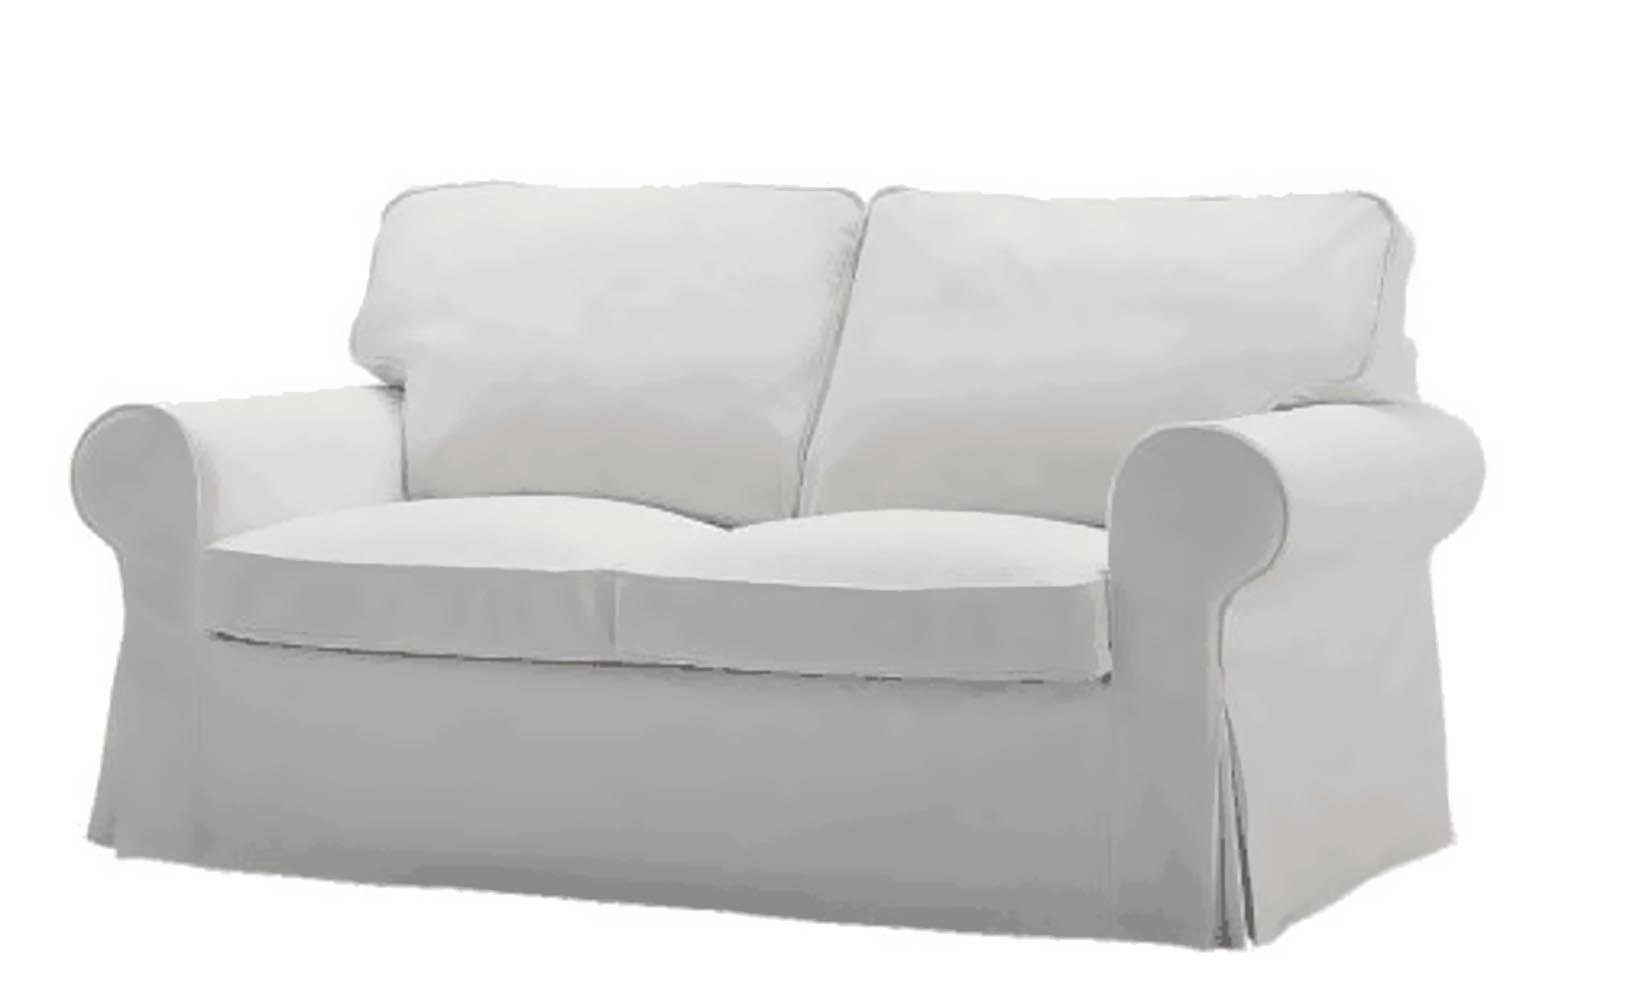 The Ektorp Two Seater Sofa Bed Cover (Durable Heavy Cotton) Replacement IS Custom Made For Ikea Ektorp 2 Seater Sleeper, Multi Color Slipcover Options (White) by Custom Slipcover Replacement